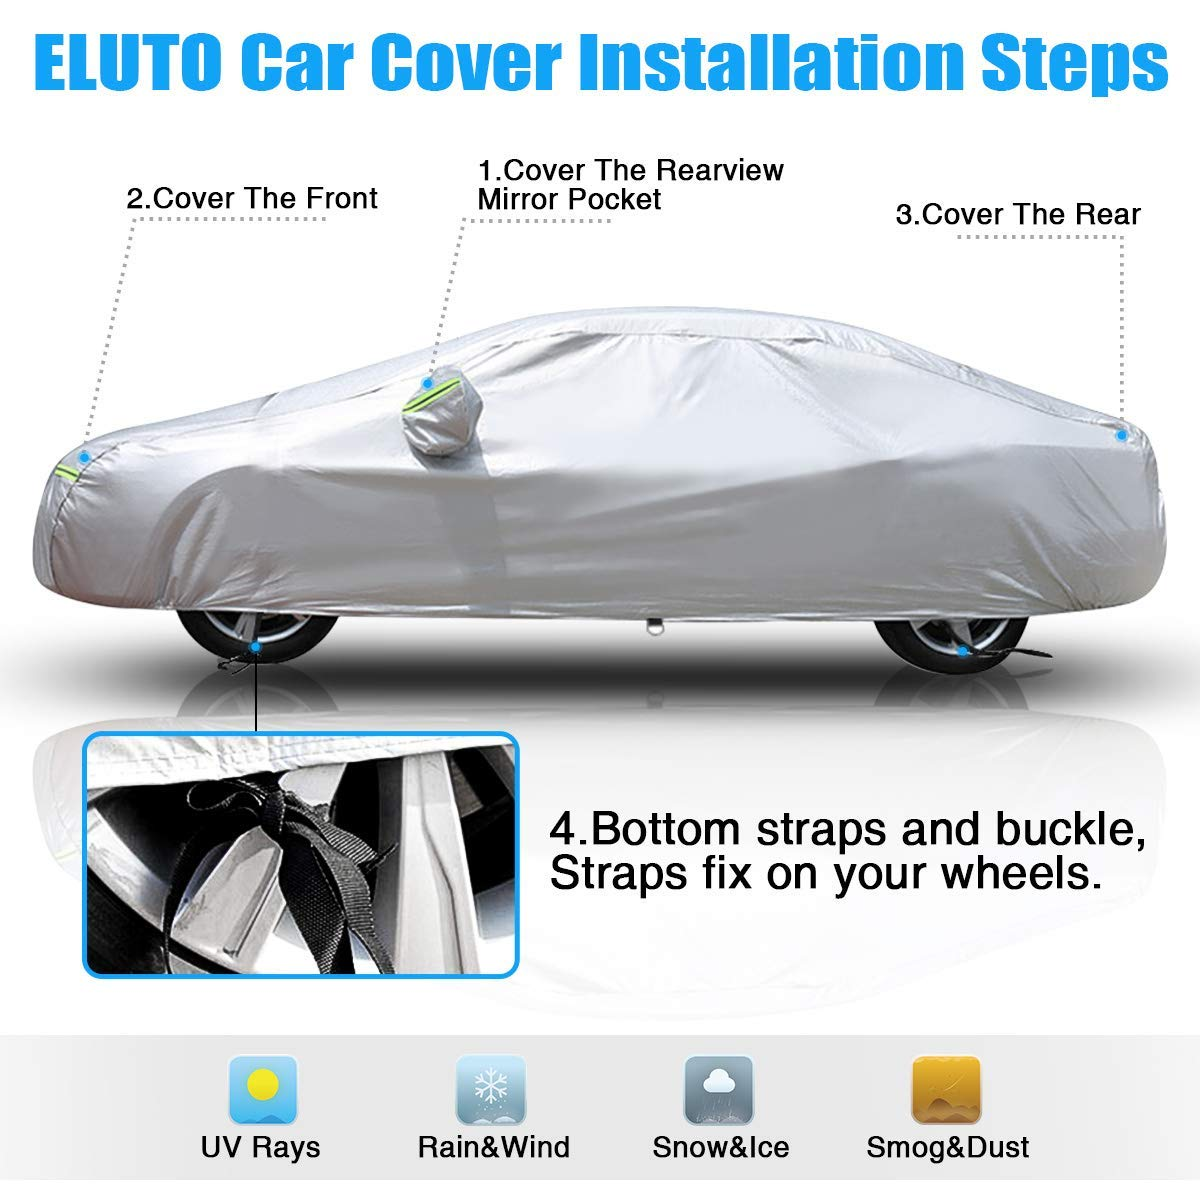 ELUTO Car Cover Outdoor Sedan Cover Waterproof Windproof All Weather Scratch Resistant Outdoor UV Protection with Adjustable Buckle Straps for Sedan Fits up to 185/'/' 185/'/'L x 70/'/'W x 60/'/'H